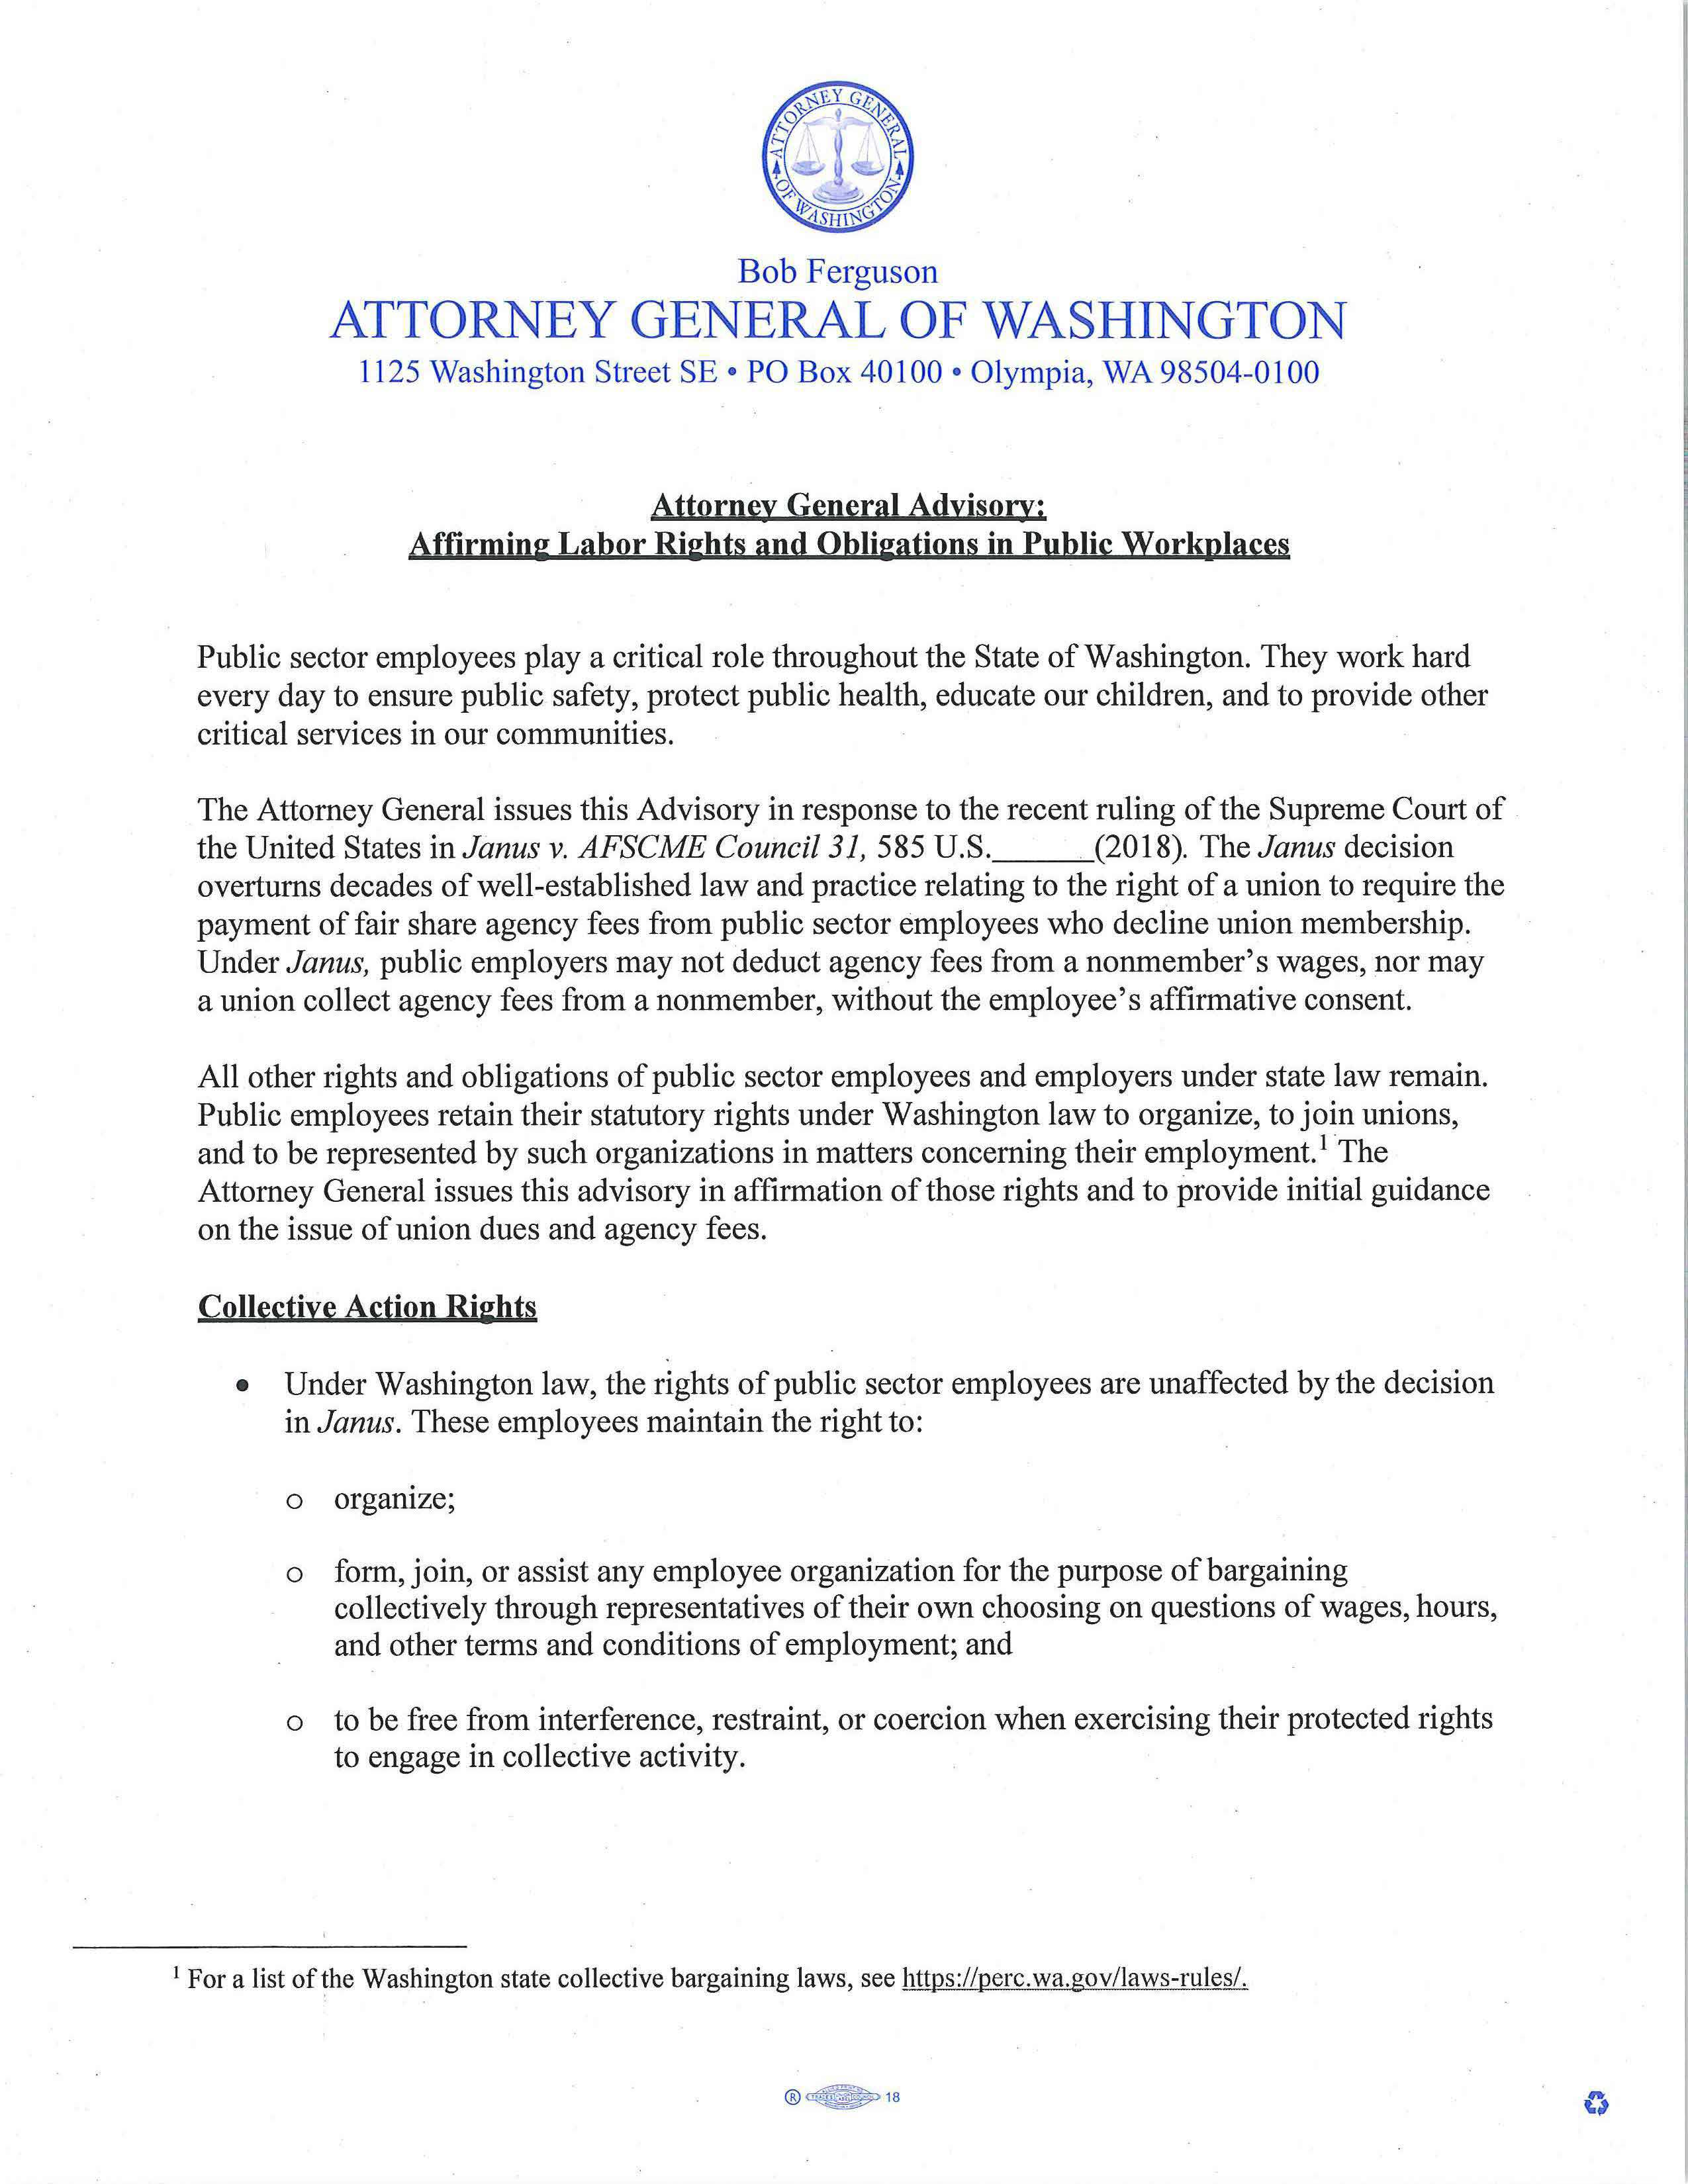 Attorney General Advisory (click for link)